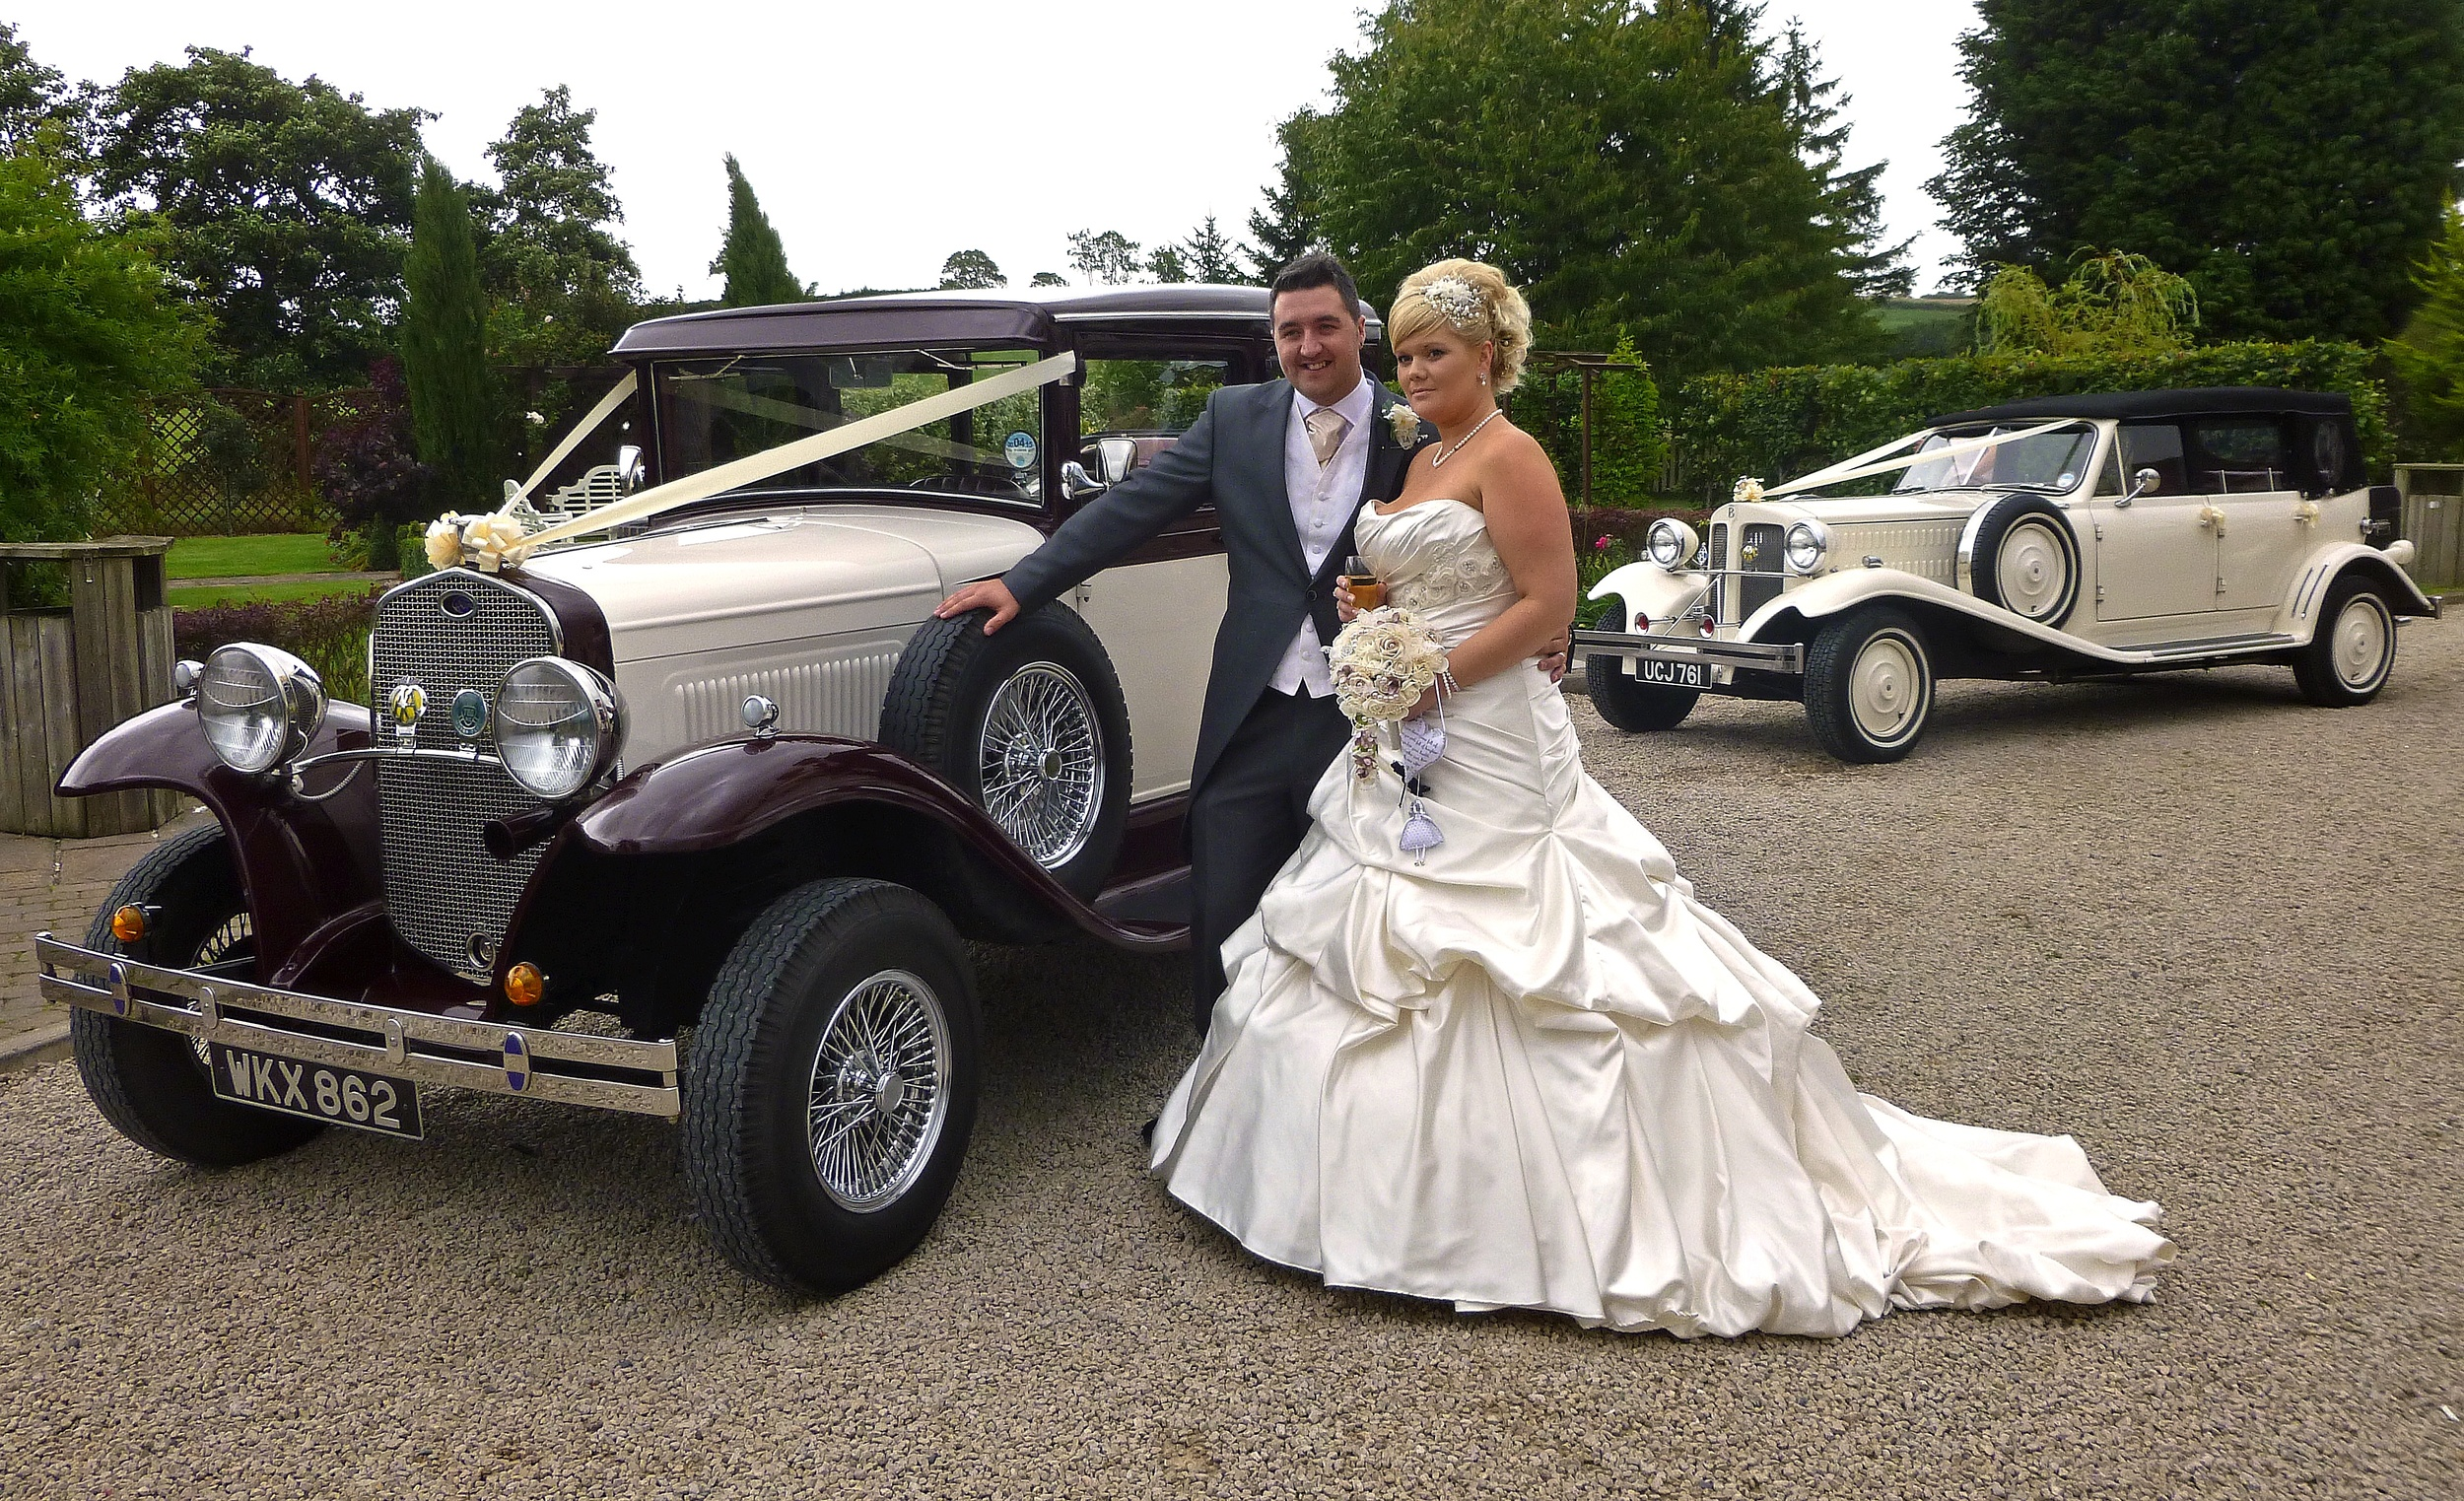 Kirsty and Tom about to set off on a short drive together following their marriage at Shearsby Bath, Leicestershire.